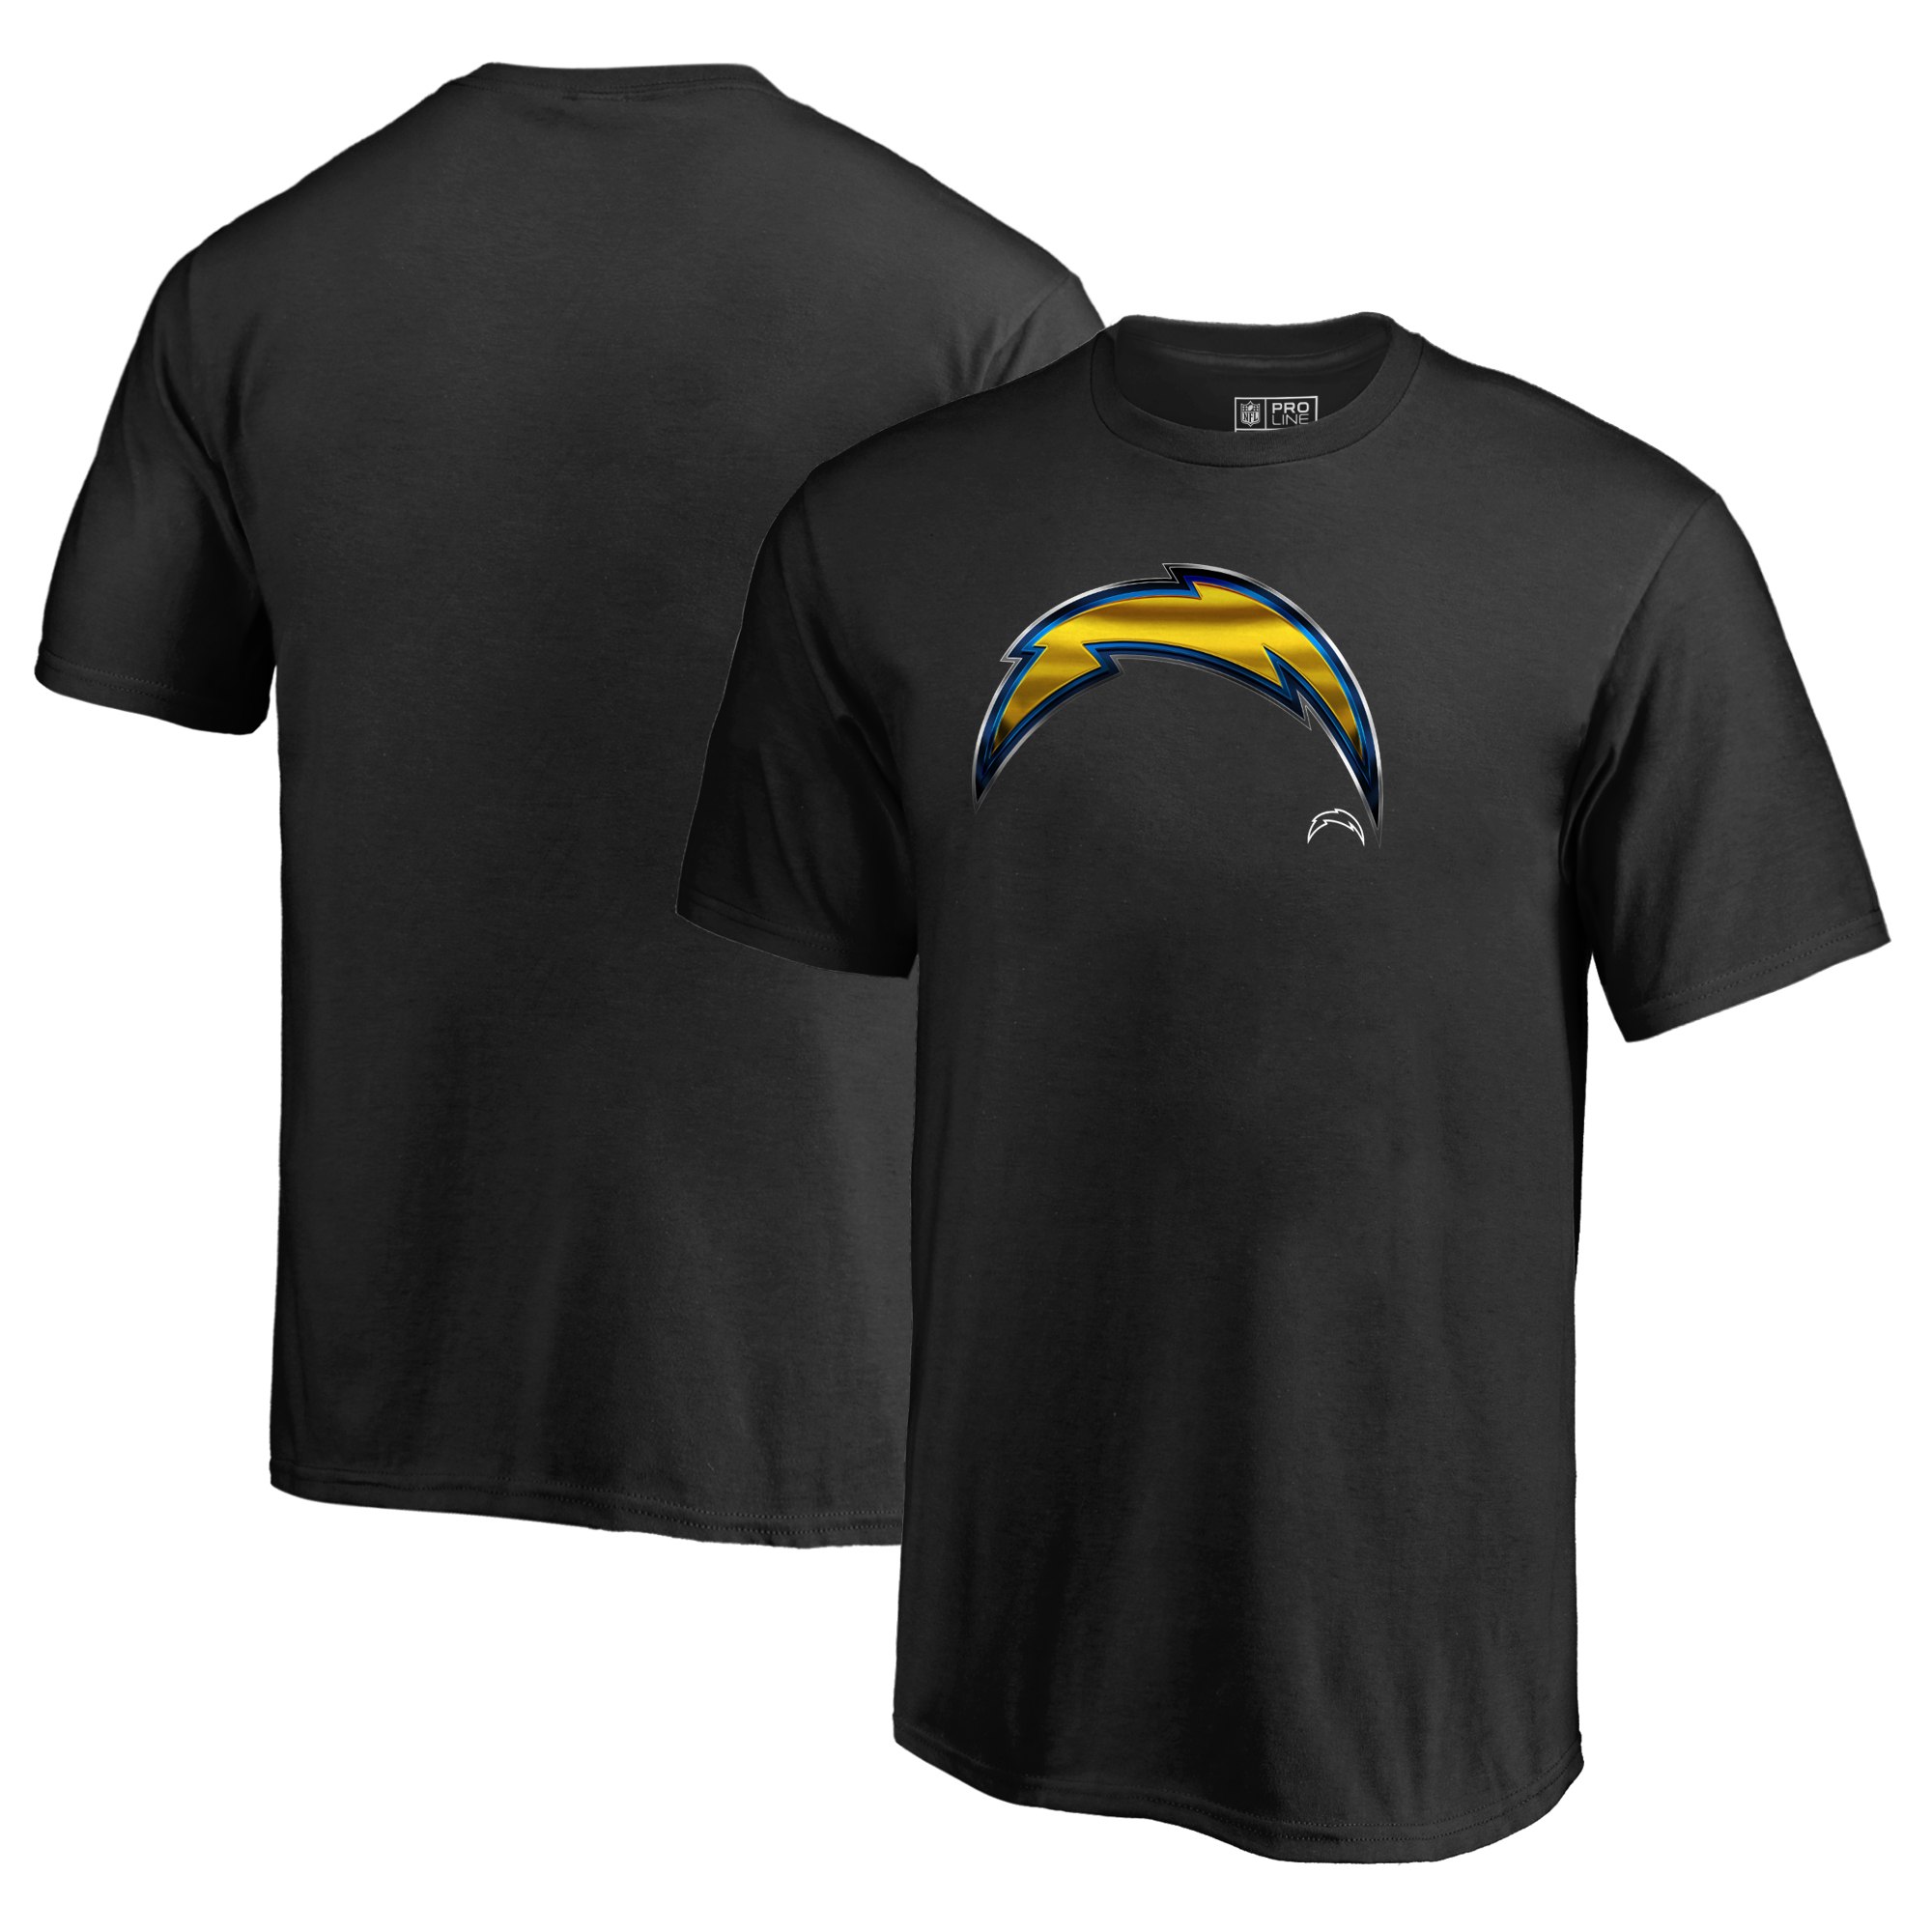 Los Angeles Chargers NFL Pro Line by Fanatics Branded Youth Midnight Mascot T-Shirt - Black